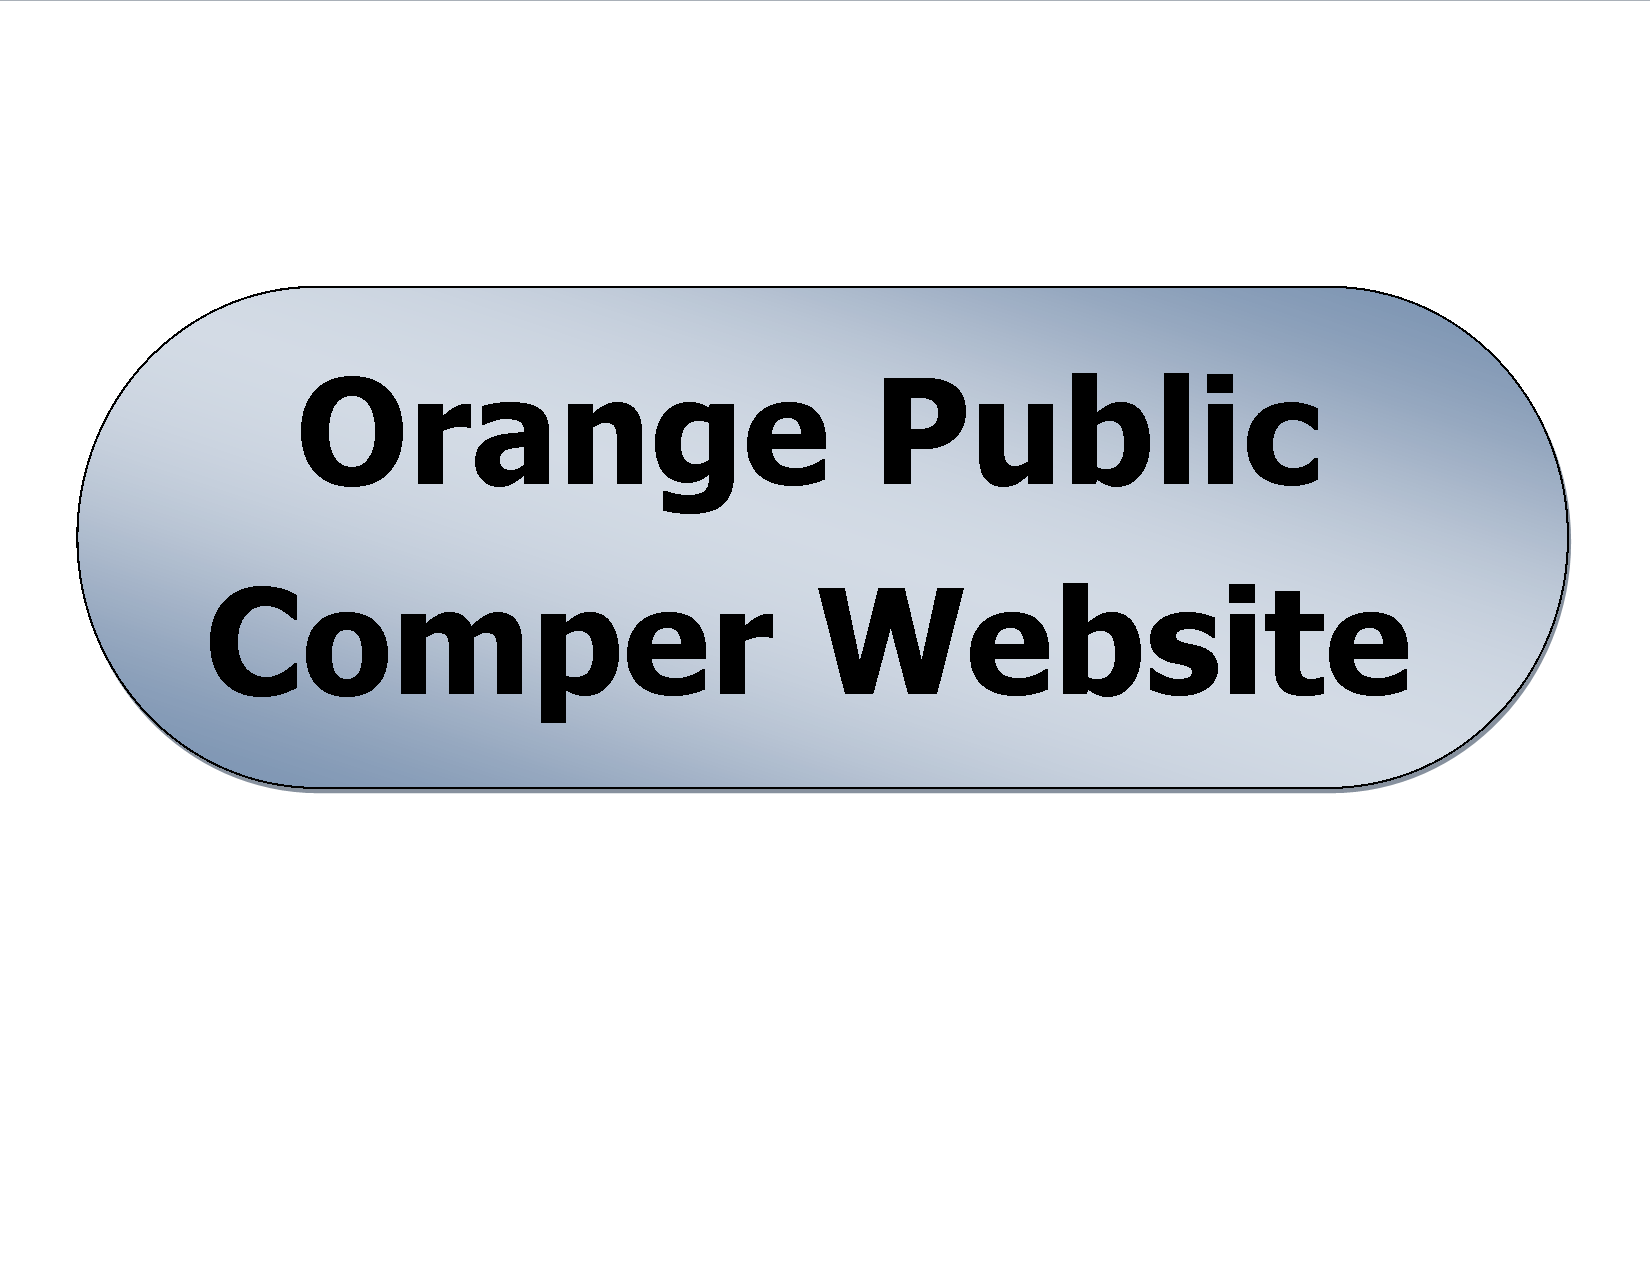 Orange Public Comper Website